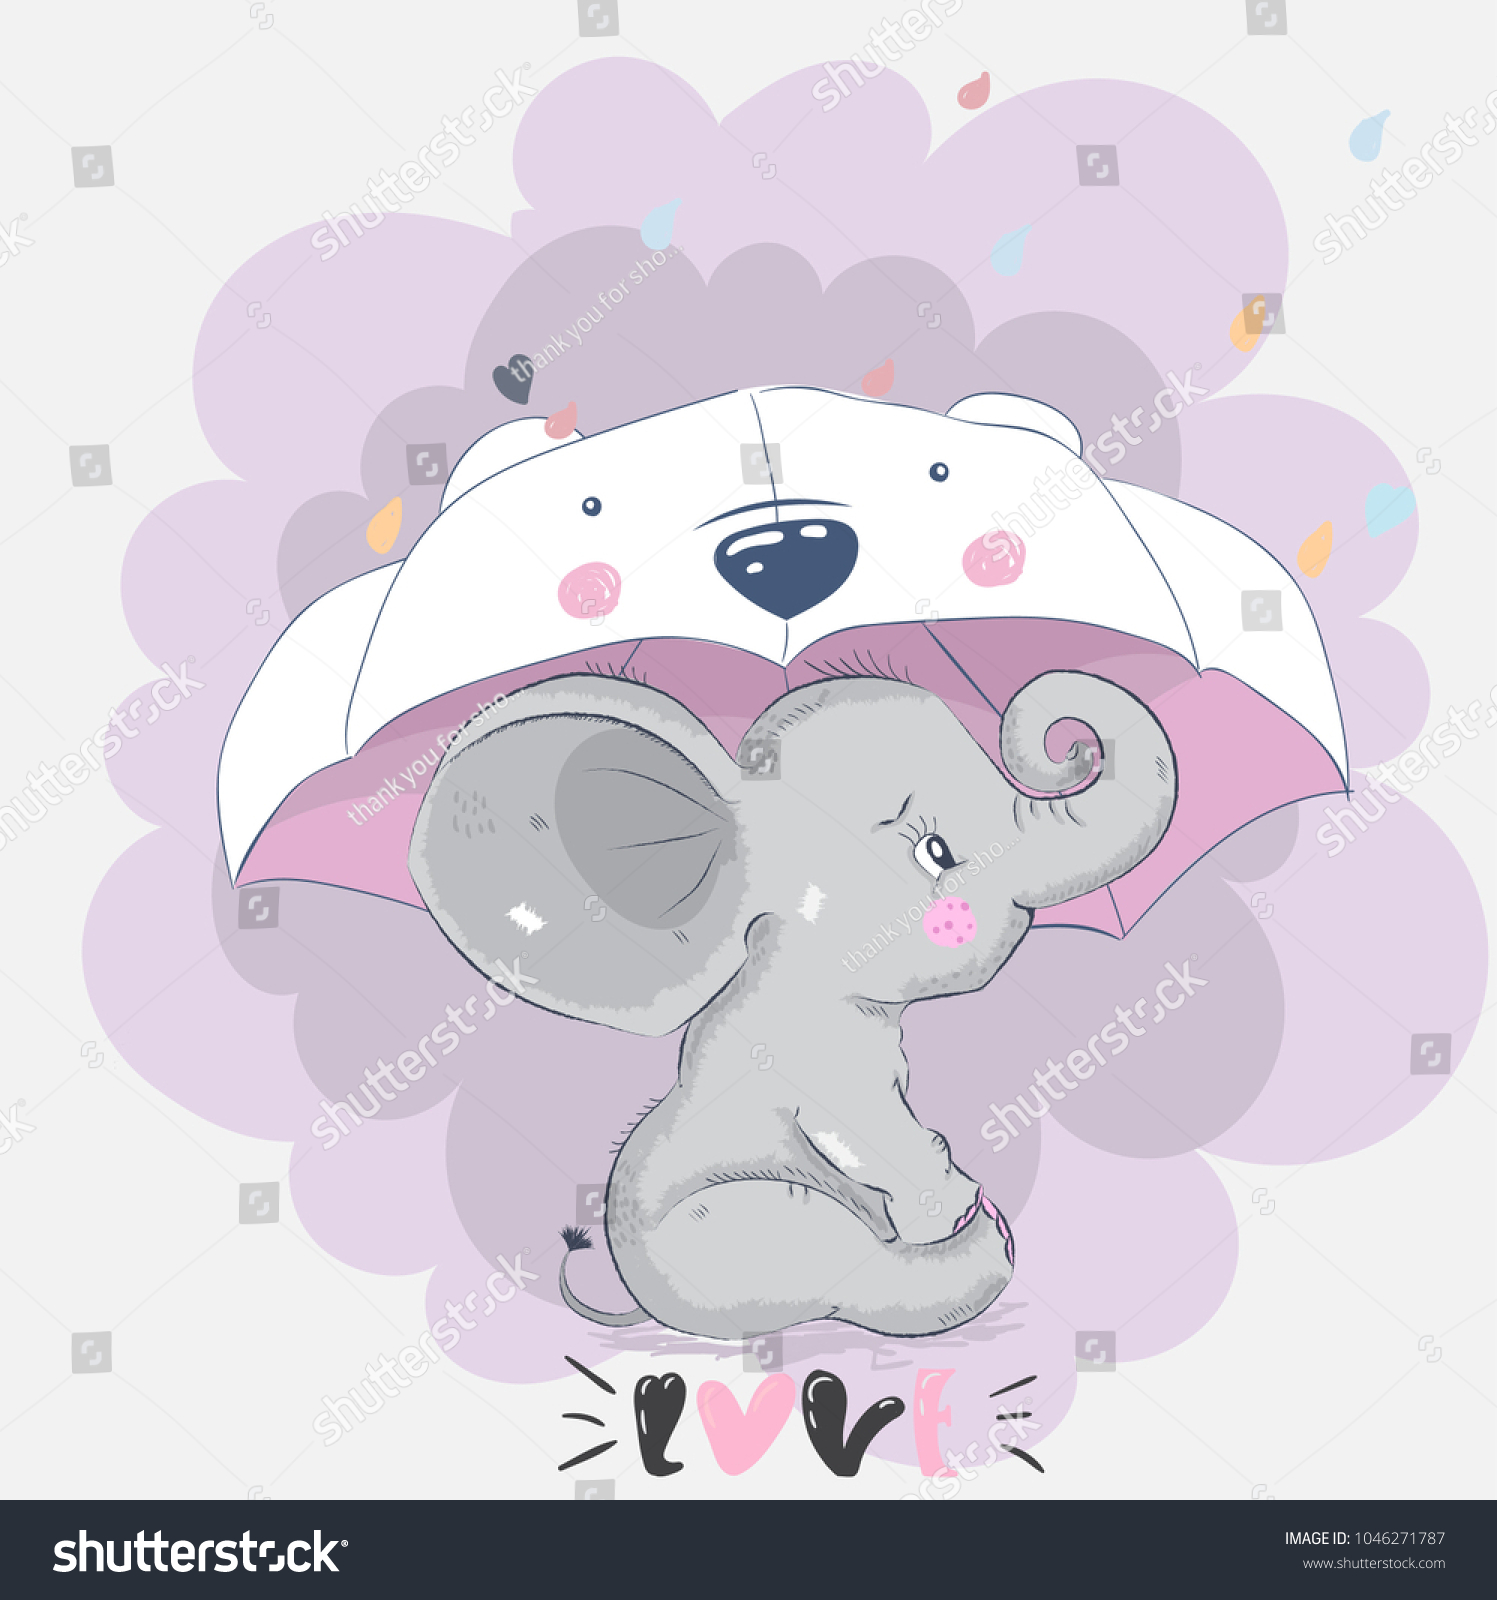 Greeting picture mms picture cute cartoon stock vector 1046271787 greeting picture for mms picture cute cartoon elephant kristyandbryce Gallery